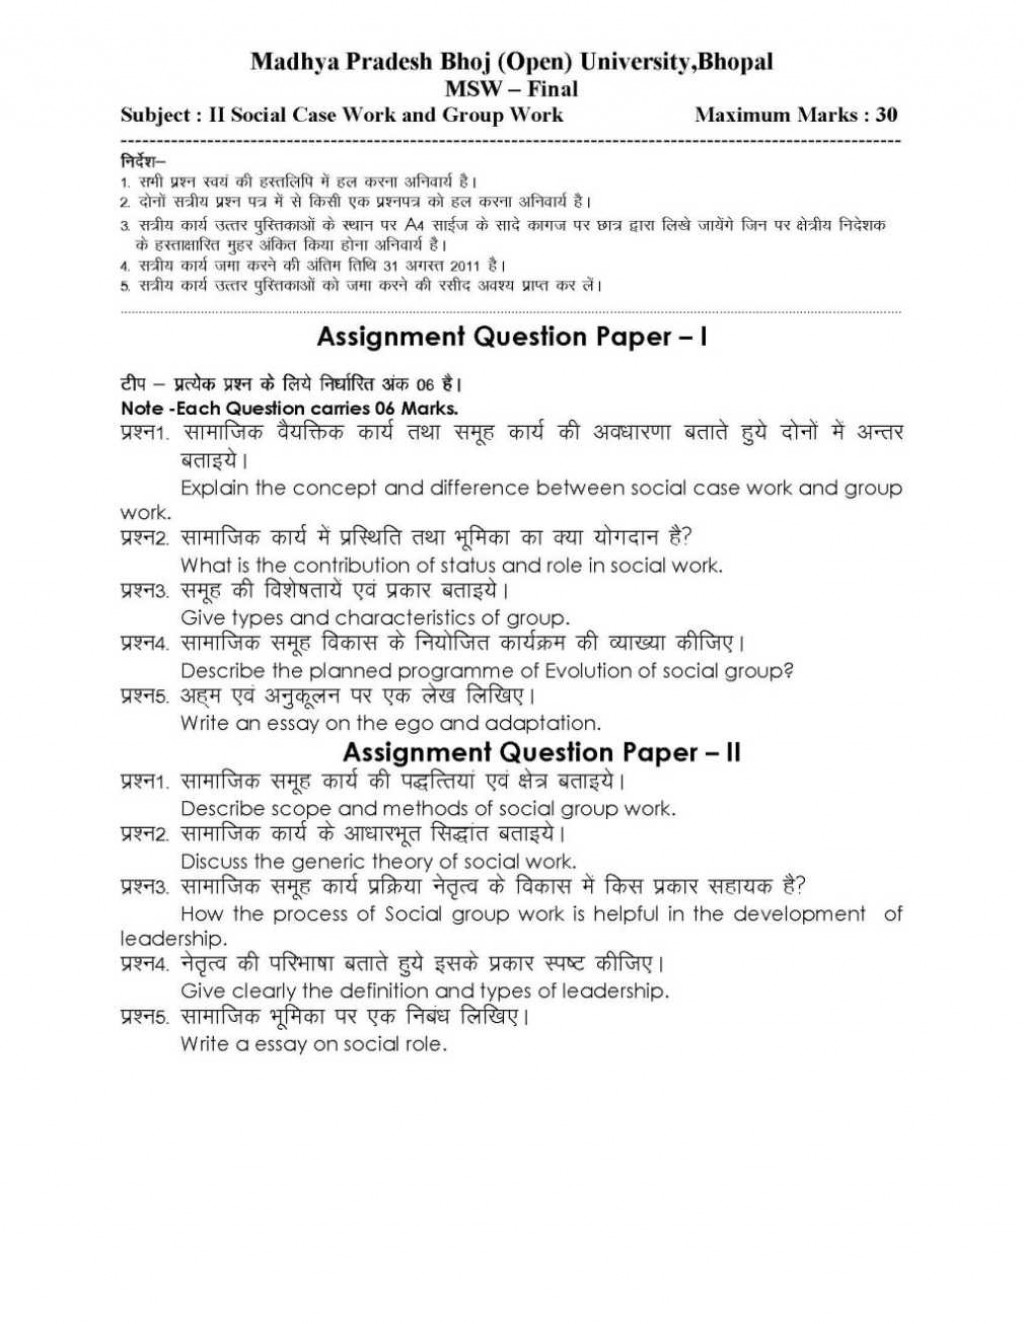 020 Bhoj University Bhopal Msw Leadership Essays Unique Essay Examples Personal Philosophy Paper Mba College Large